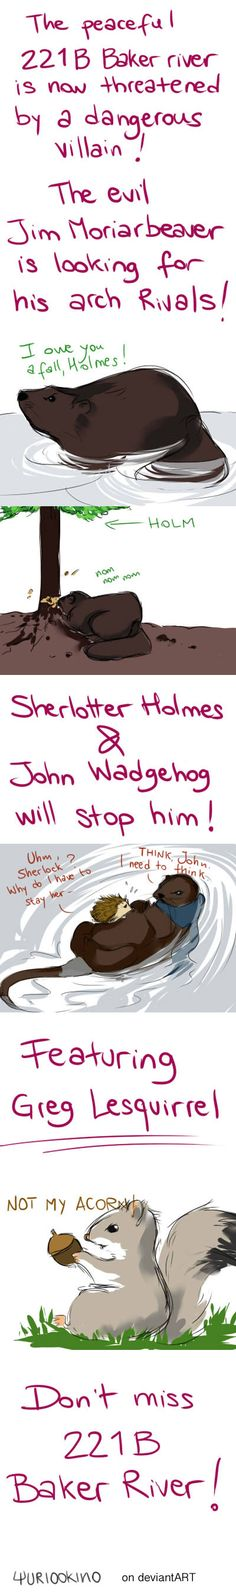 Sherlotter Holmes and John Wadgehog. NOT MY ACORN! This is so cute and adorable all at the same time!